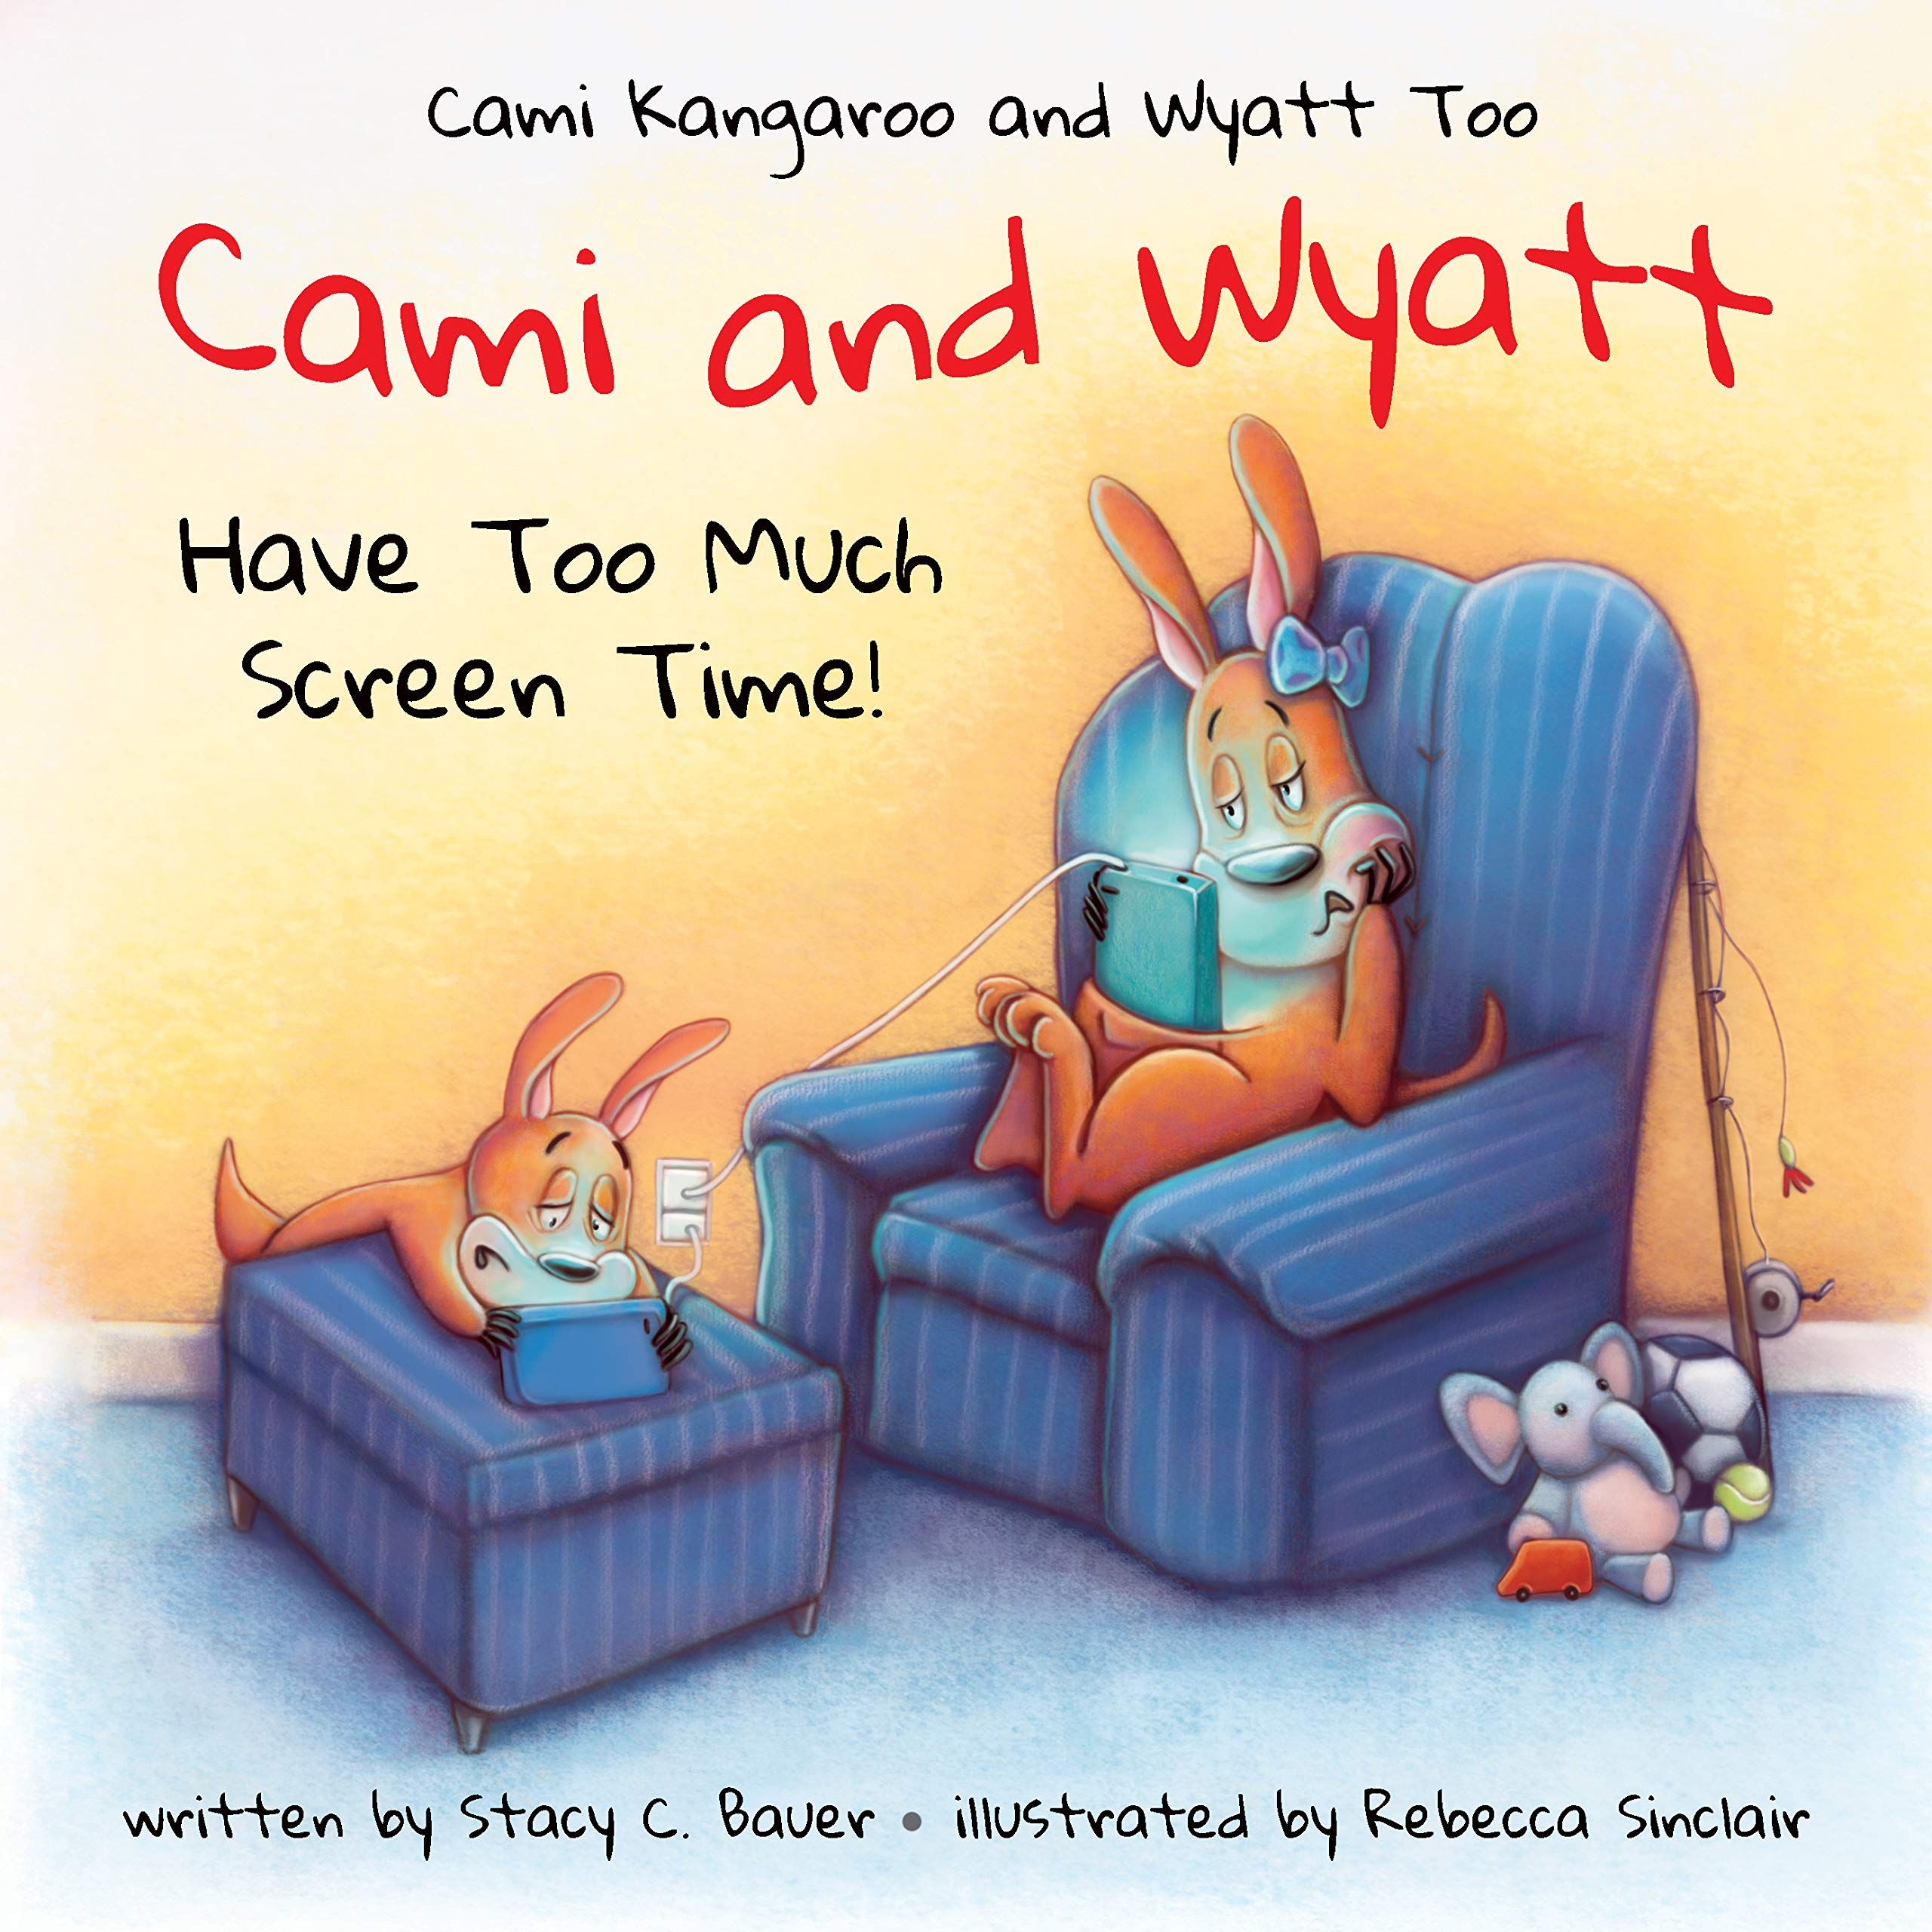 Cami and Wyatt Have Too Much Screen Time: a children's book encouraging imagination and family time (Cami Kangaroo and Wyatt Too)